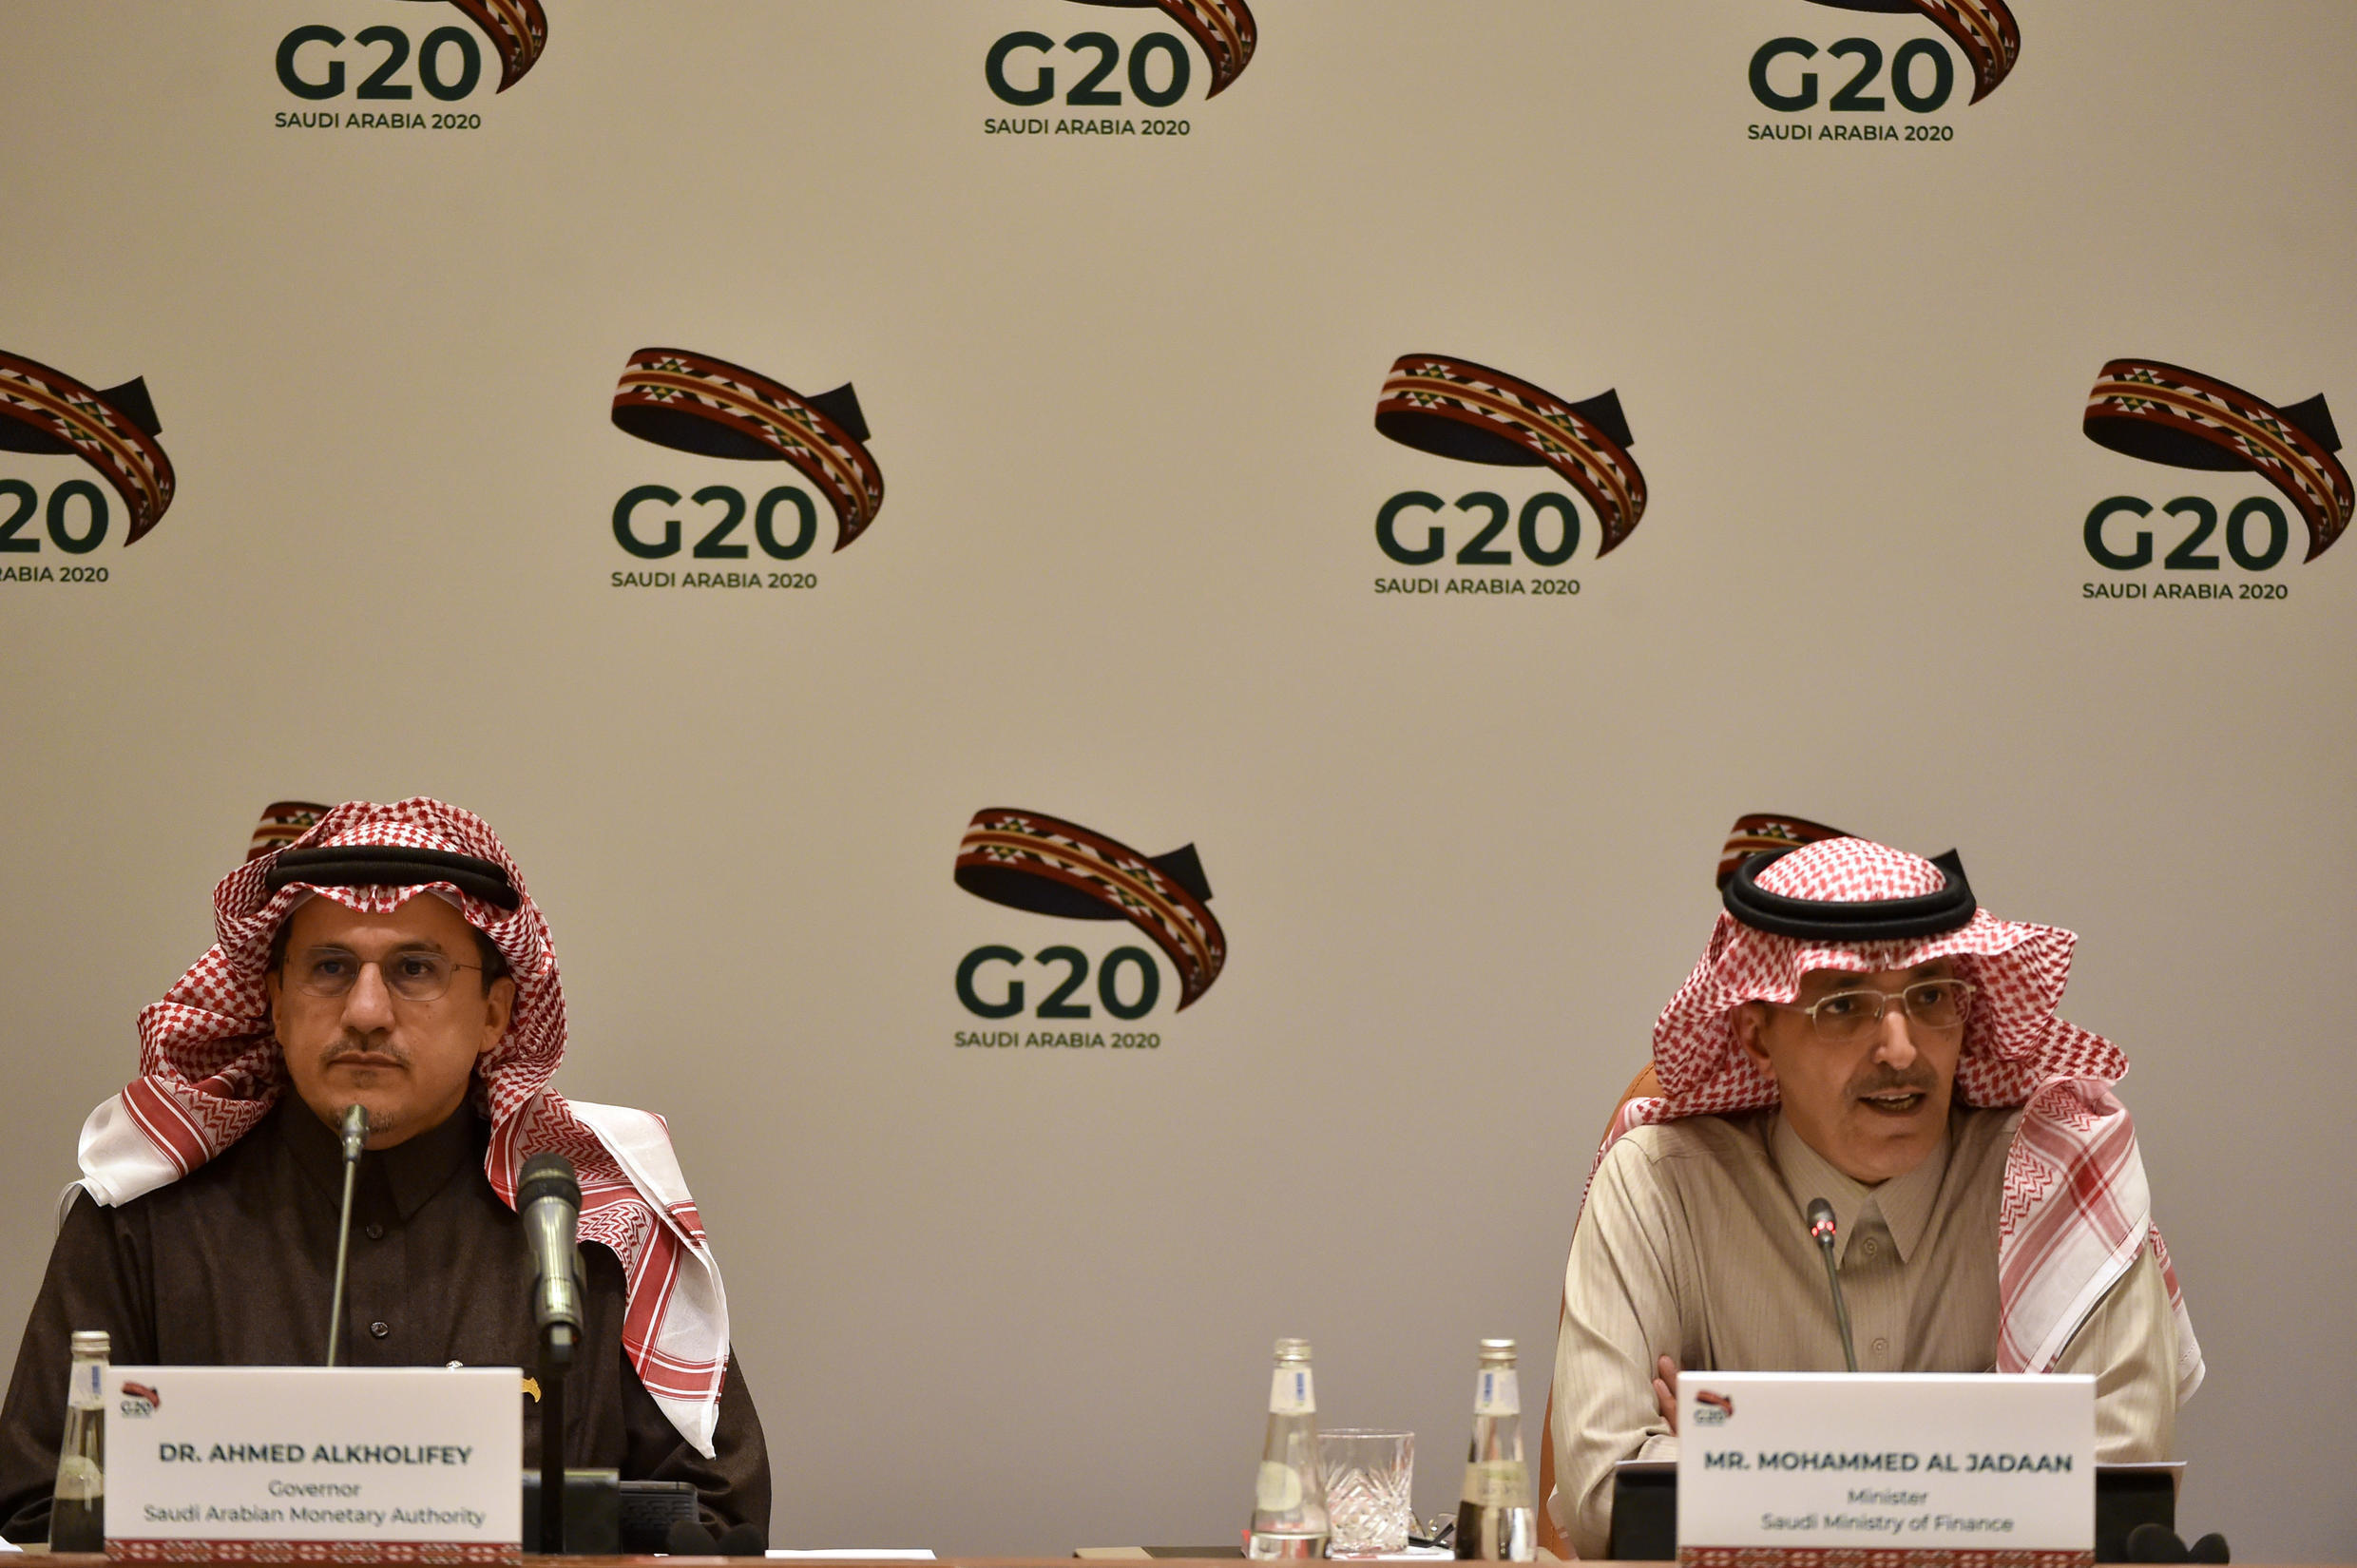 Saudi Arabia is the host of the virtual G20 talks, chaired by Saudi Finance Minister Mohammed al-Jadaan (R) and central bank governor Ahmed al-Kholifey